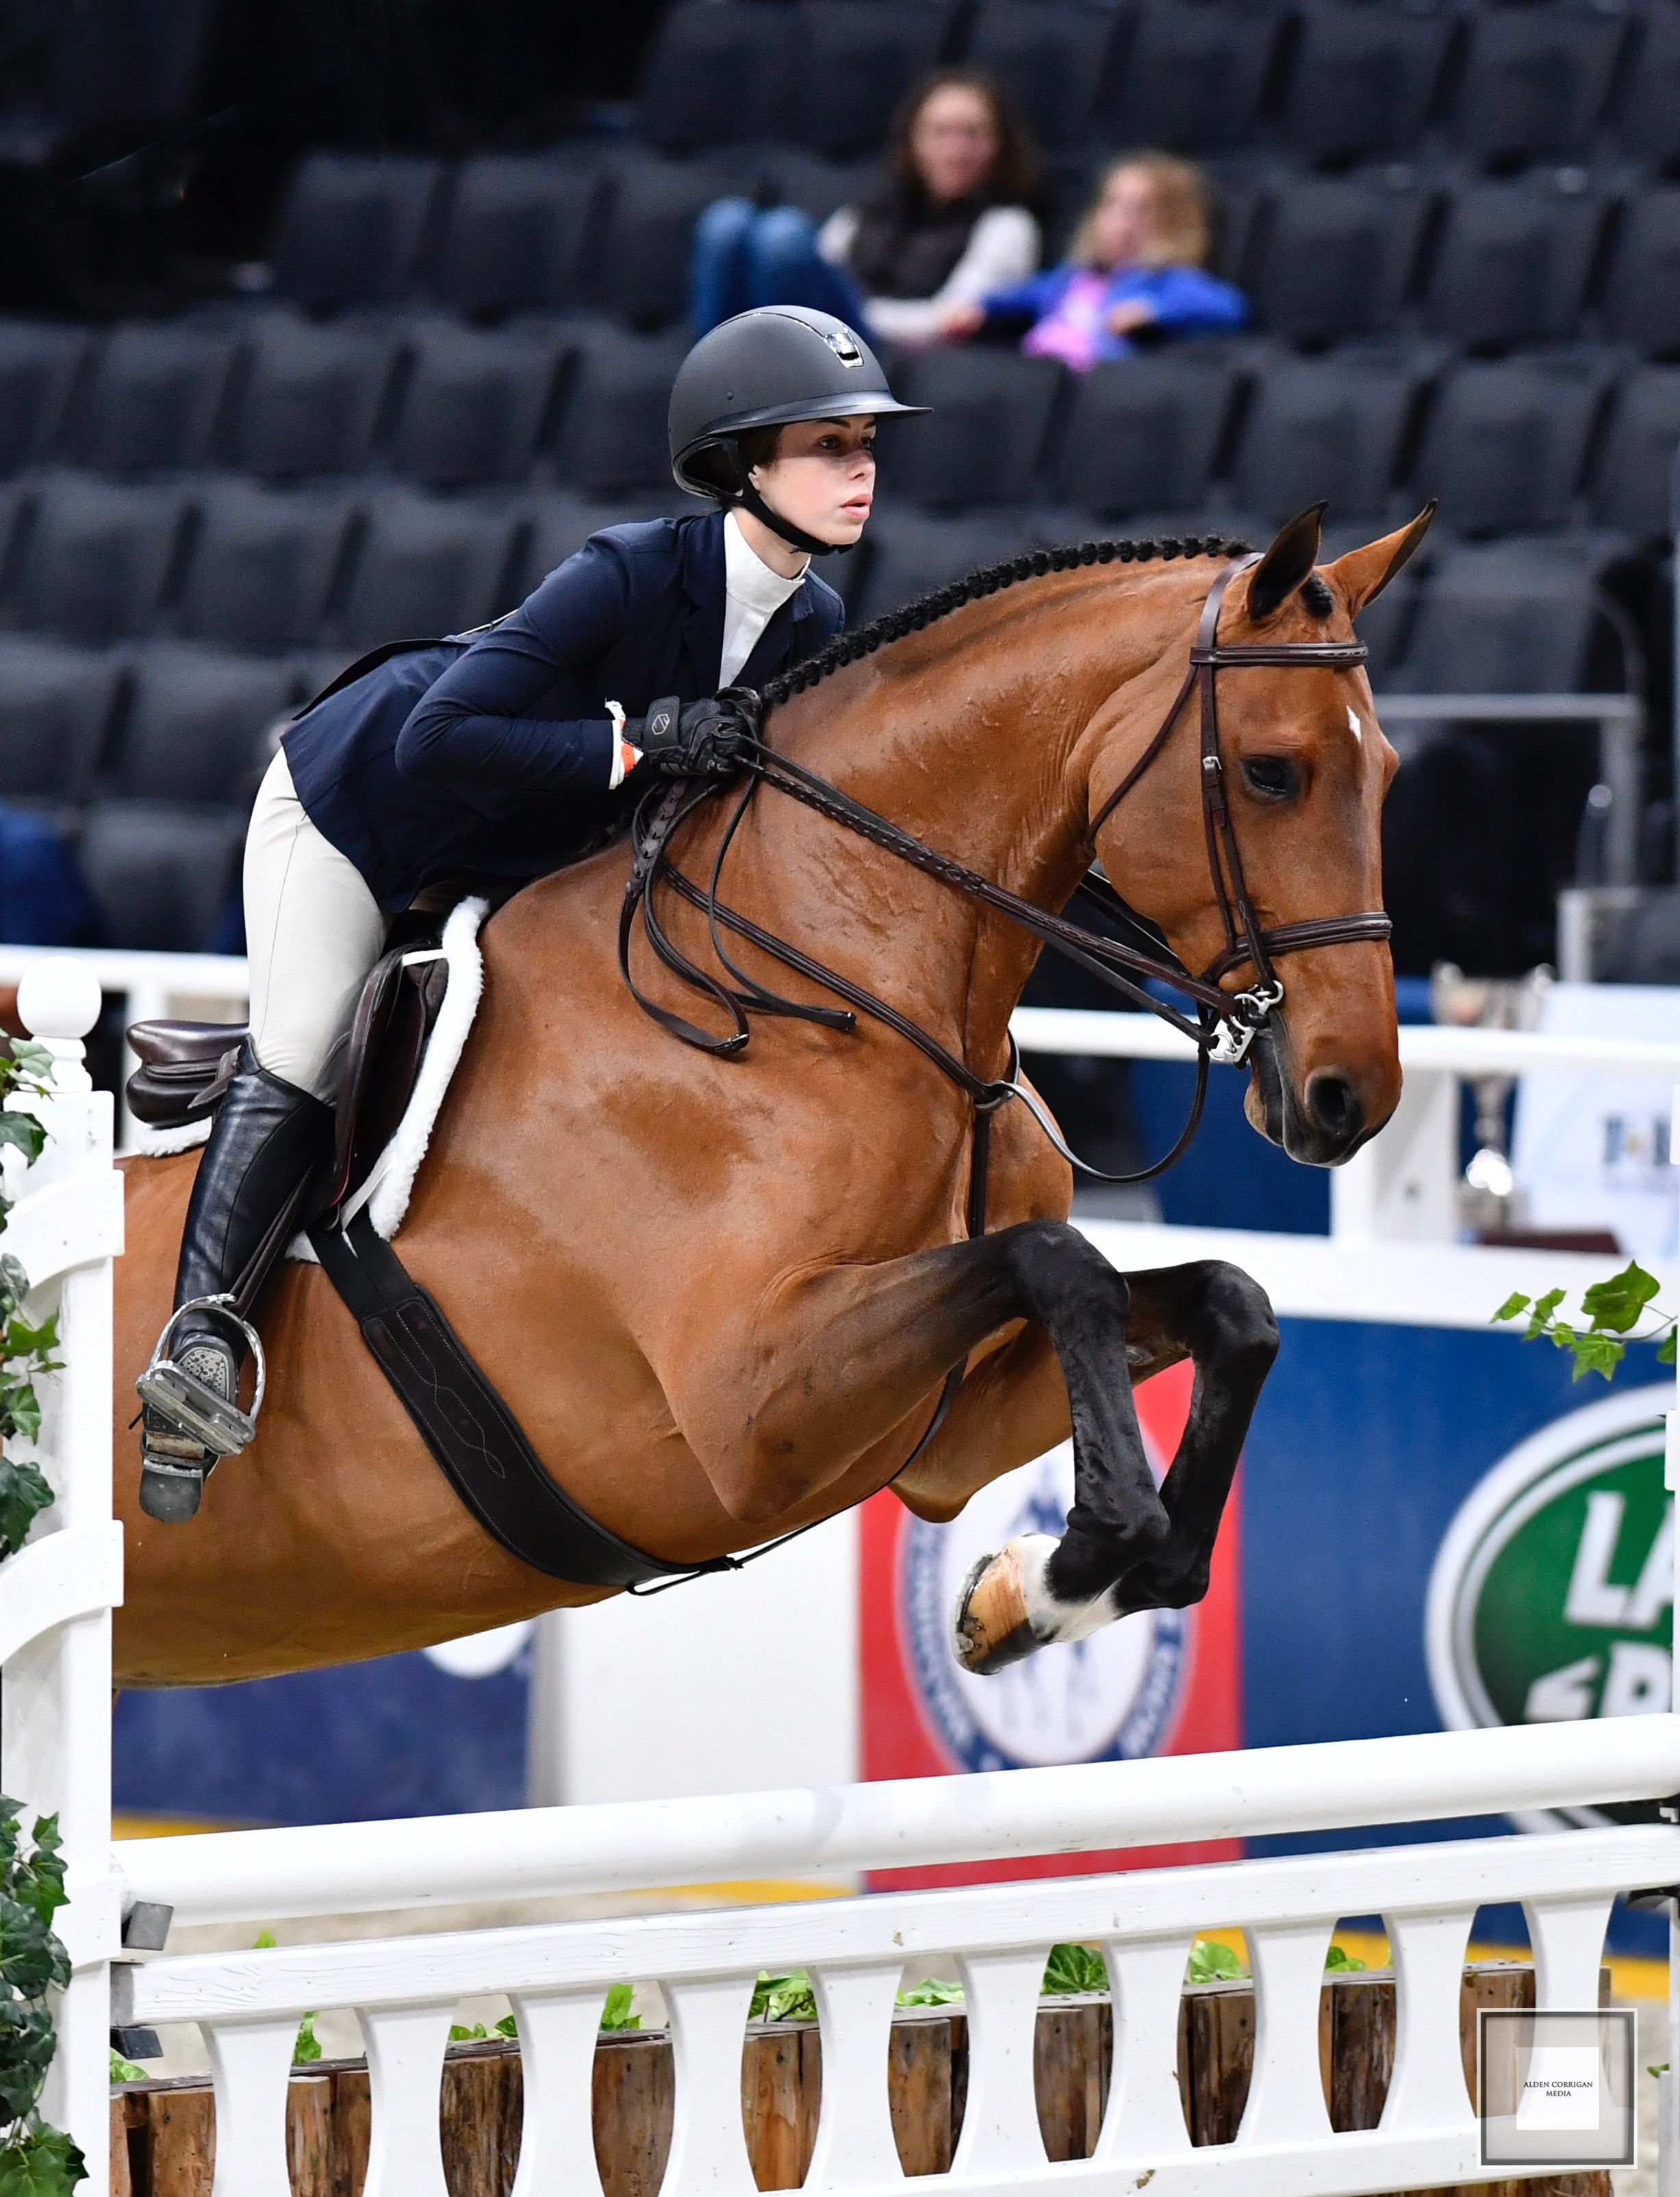 Avery Glynn and Calle at the Washington International Medal Finals. Photography by Alden Corrigan Media​​​​​​​